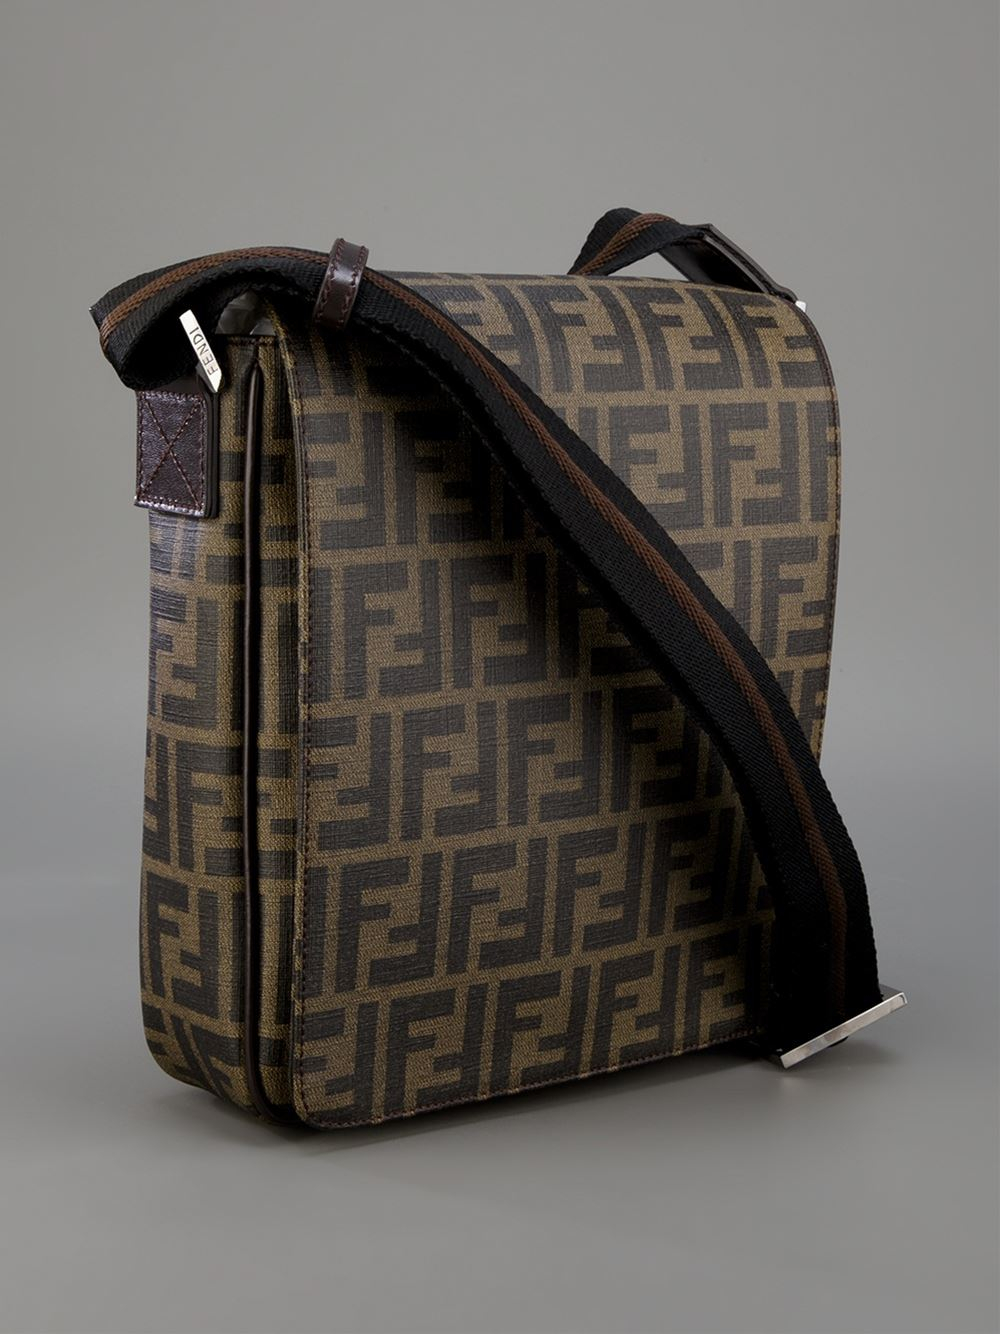 Cost Sale Online Fendi Messenger shoulder bag Clearance 2018 Unisex Discount Latest Cheap Fast Delivery BccNxIGnsO